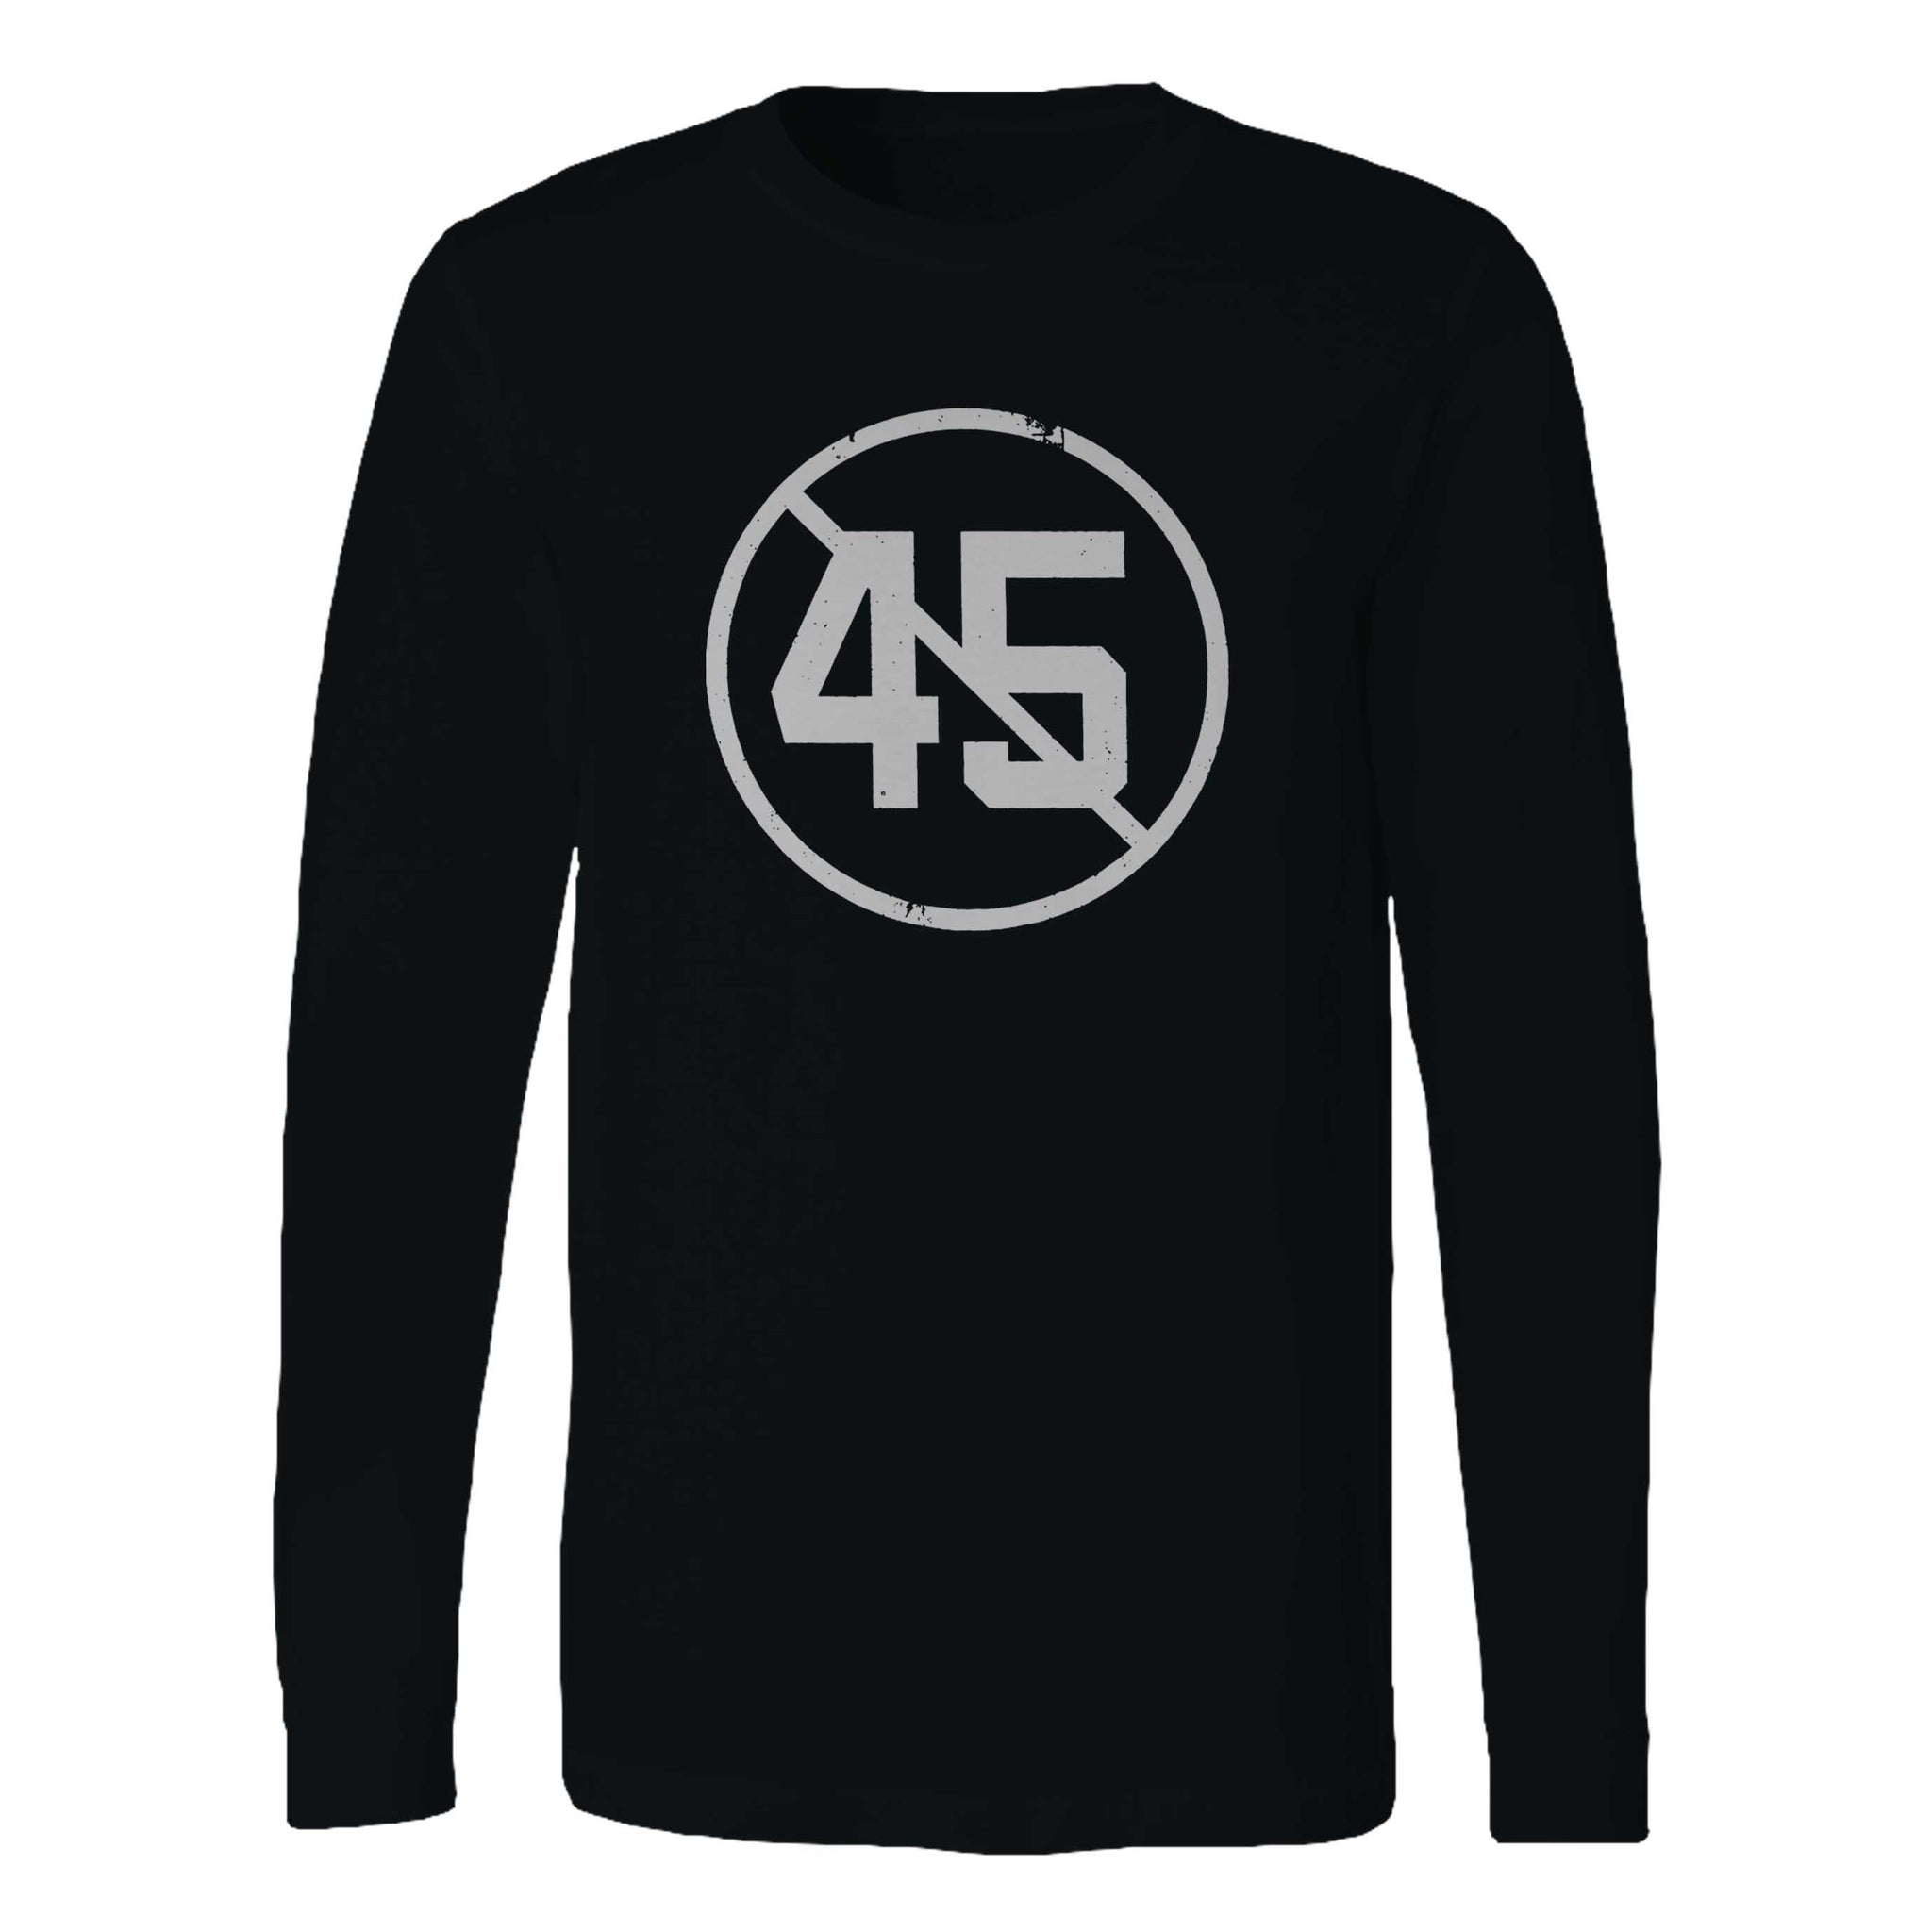 Say No To 45 Long Sleeve T-Shirt